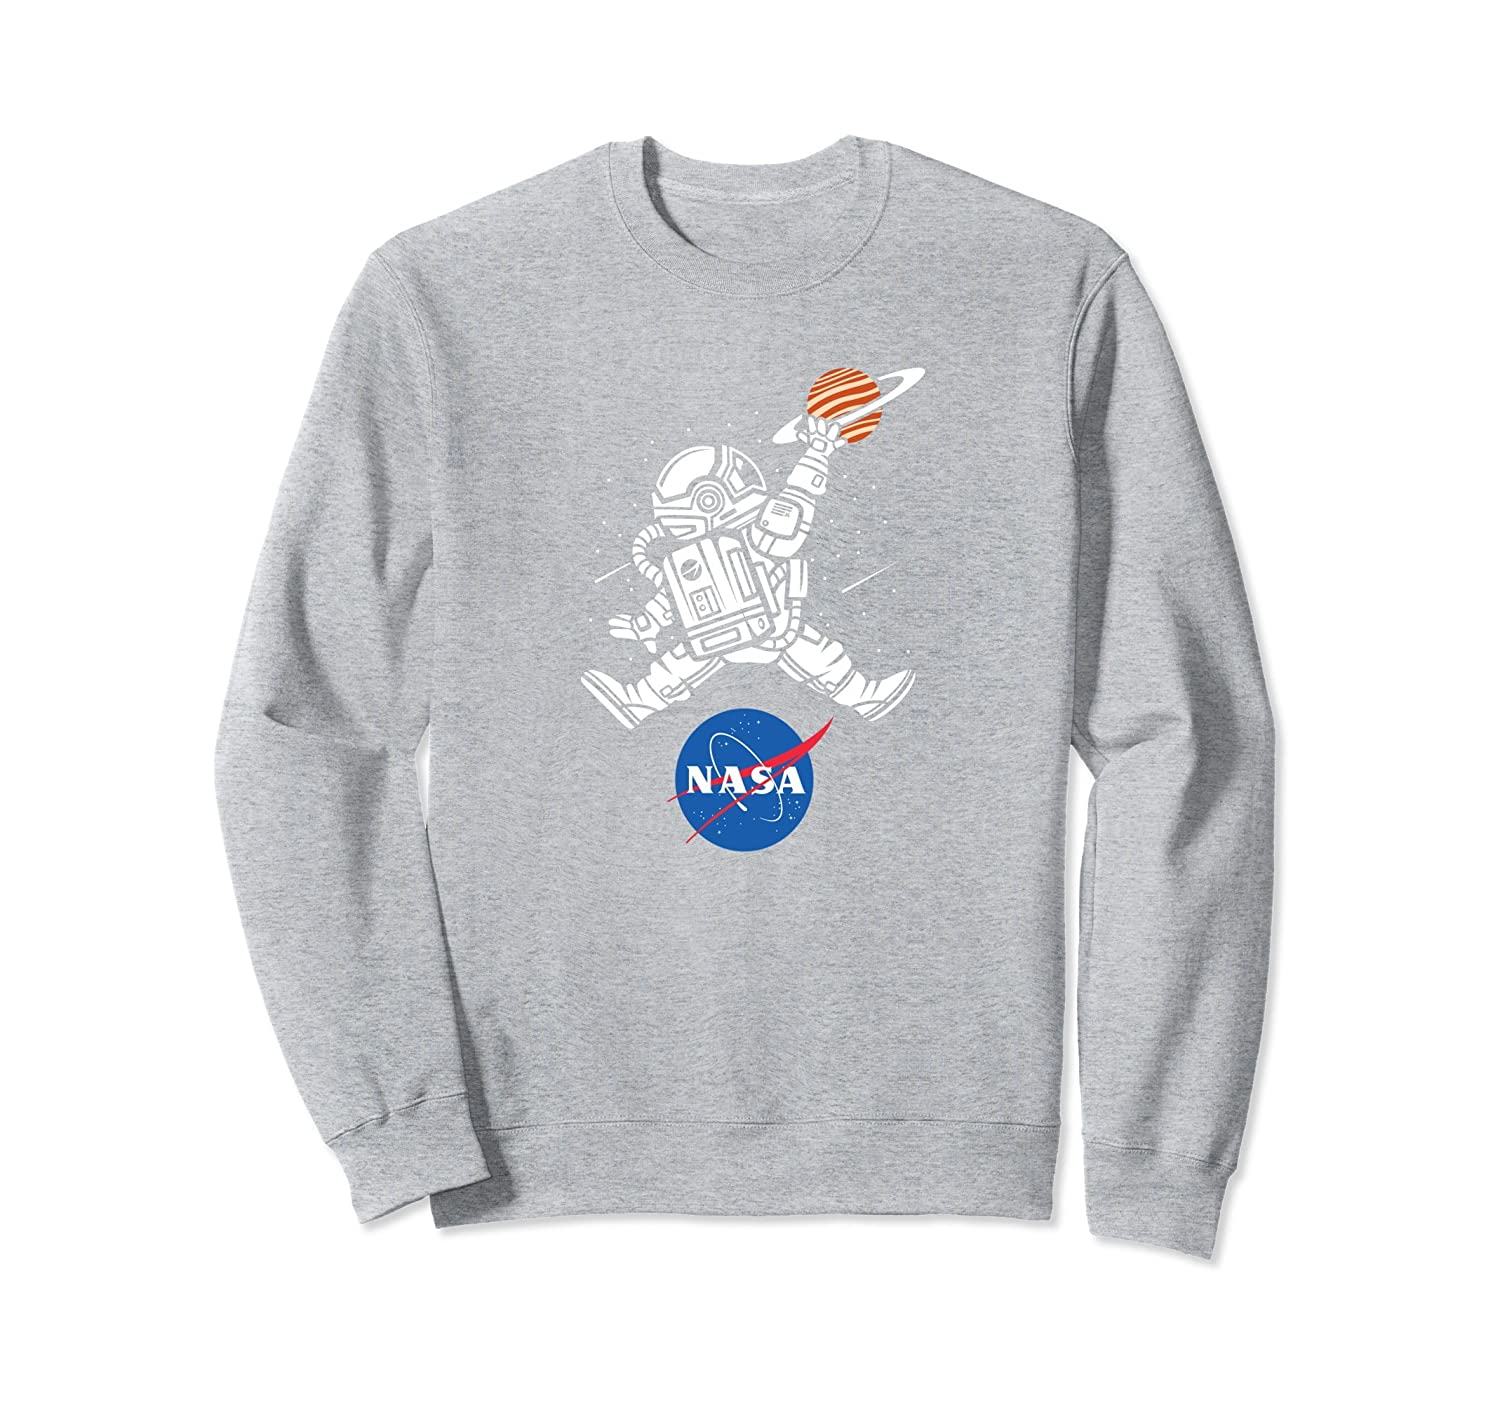 Astronaut Basketball League Slam Dunk NASA Sweatshirt-AZP